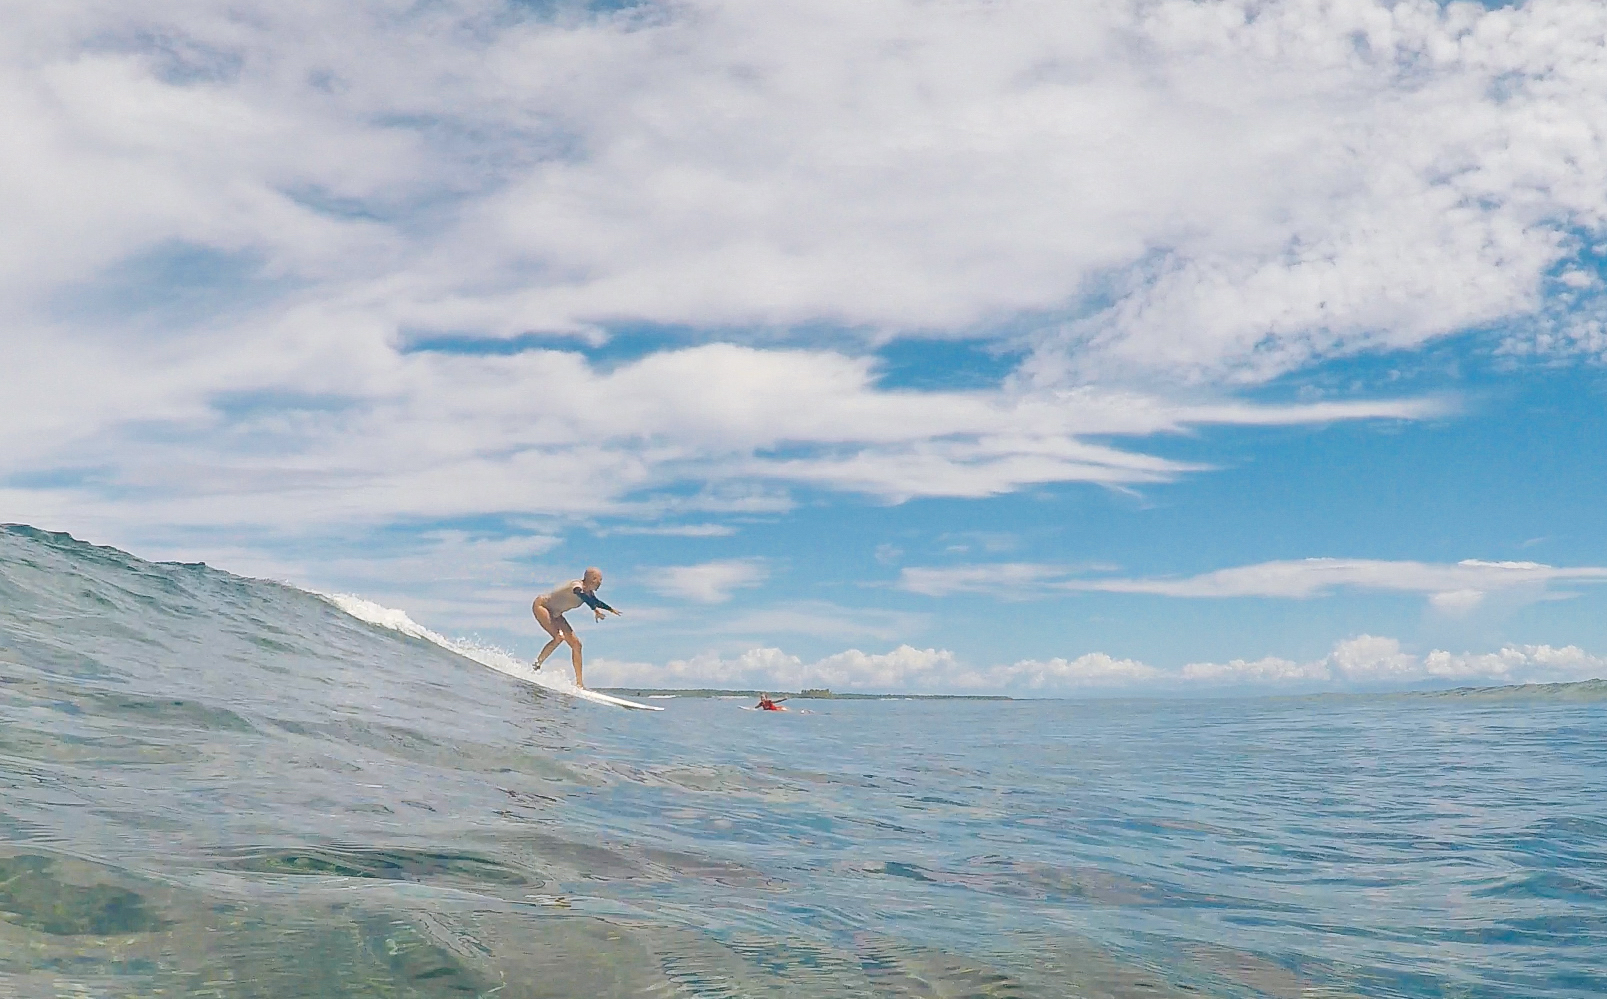 surf-yoga-retreat-siargao-island-philippines.jpg